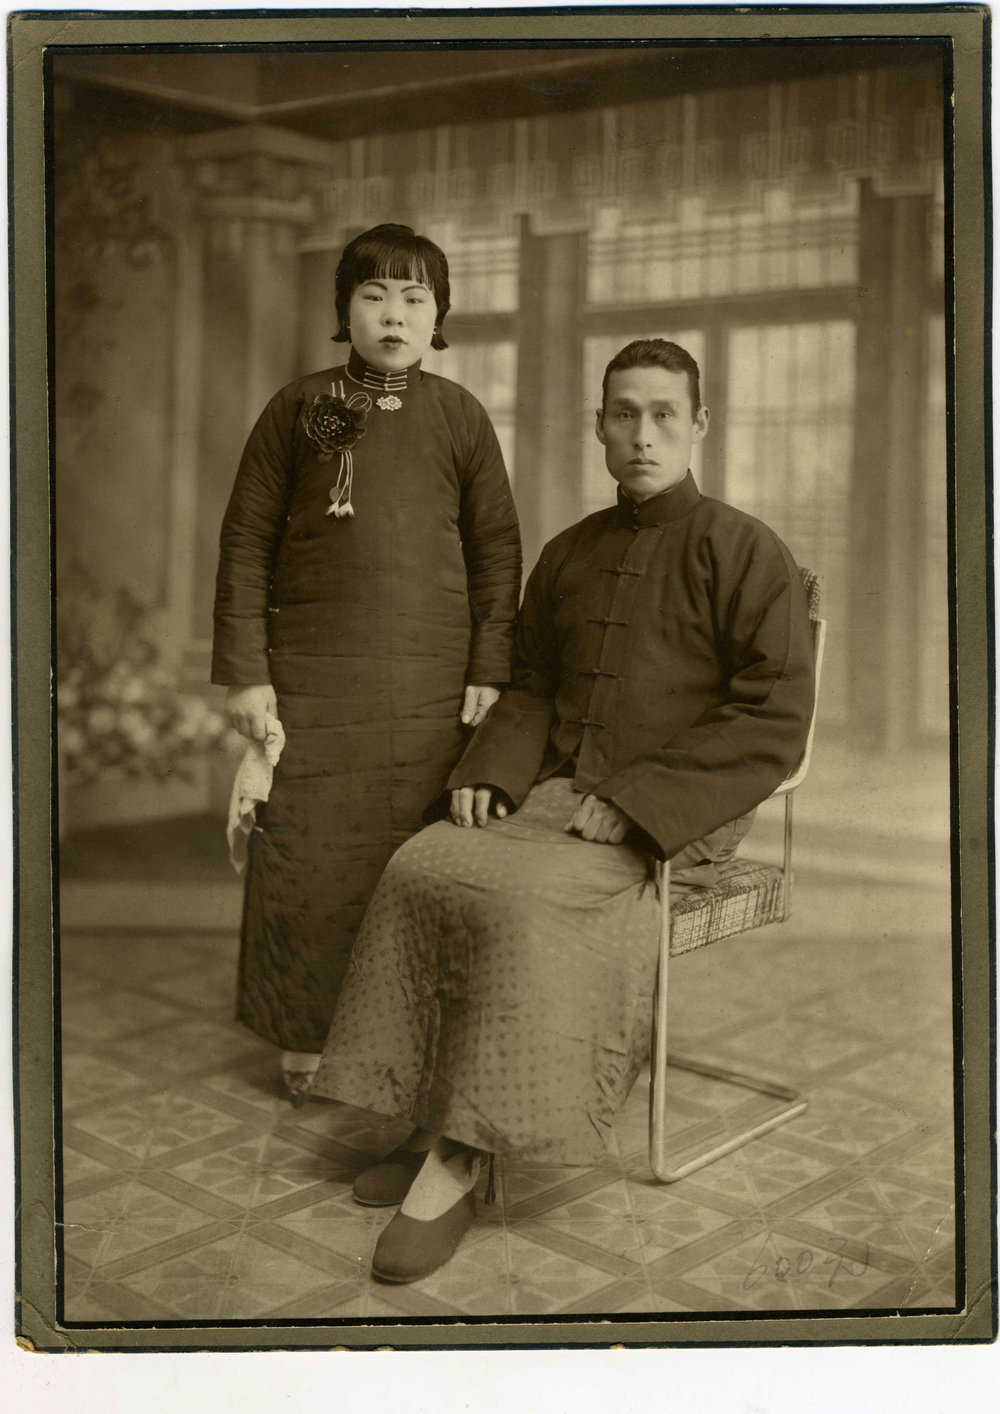 wang-qiuhang-collecting-women-nineteenth-twentieth-centuries-photography-of-china-0022.jpg